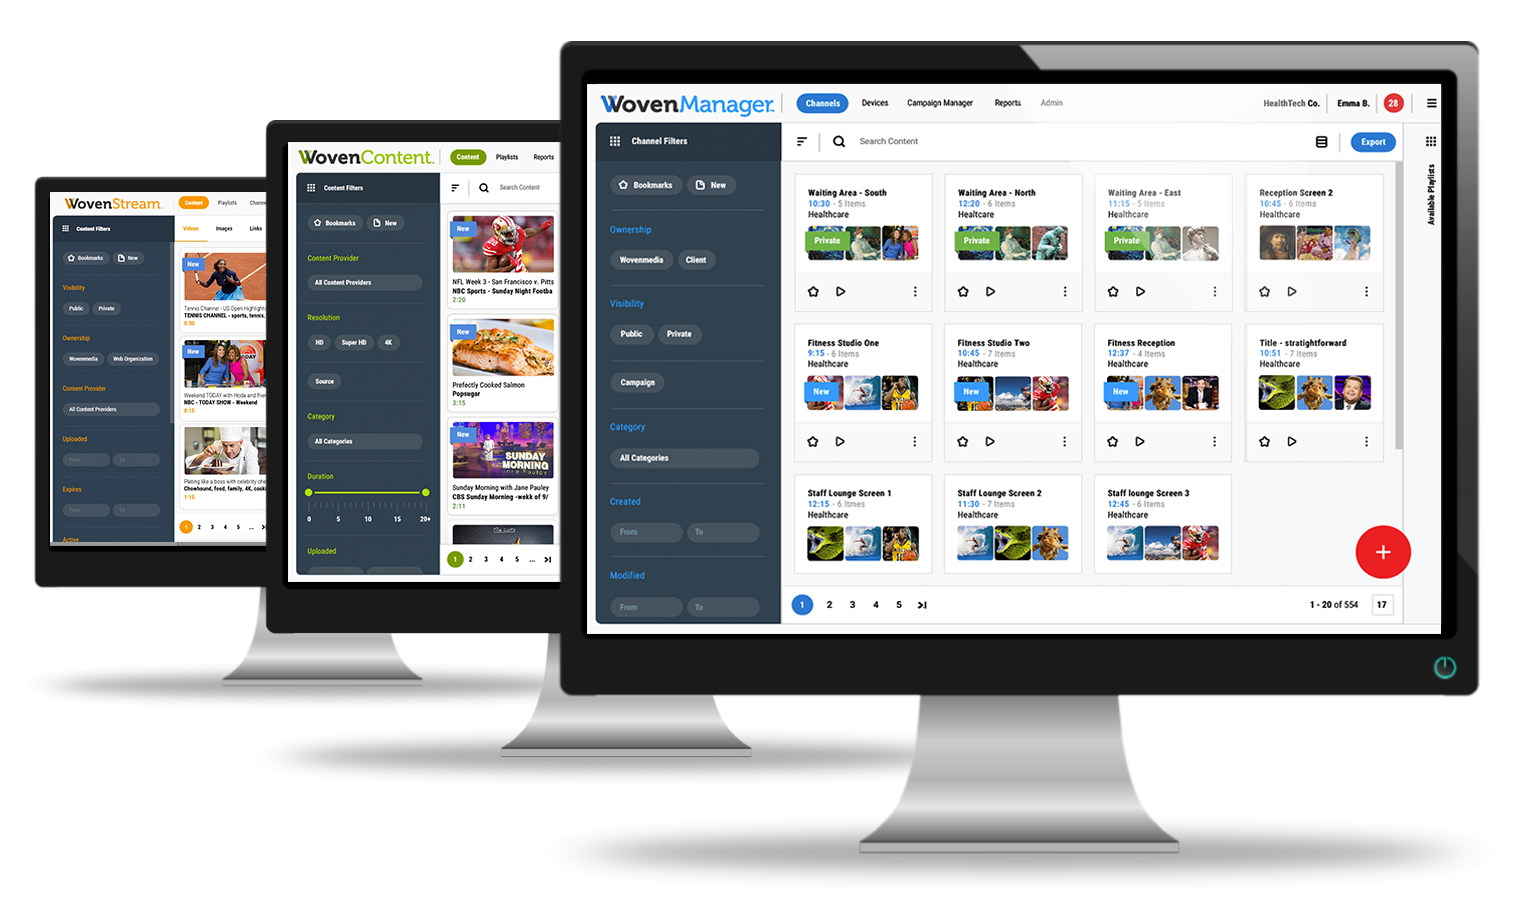 Wovenmanager, wovencontent and wovenstream platforms